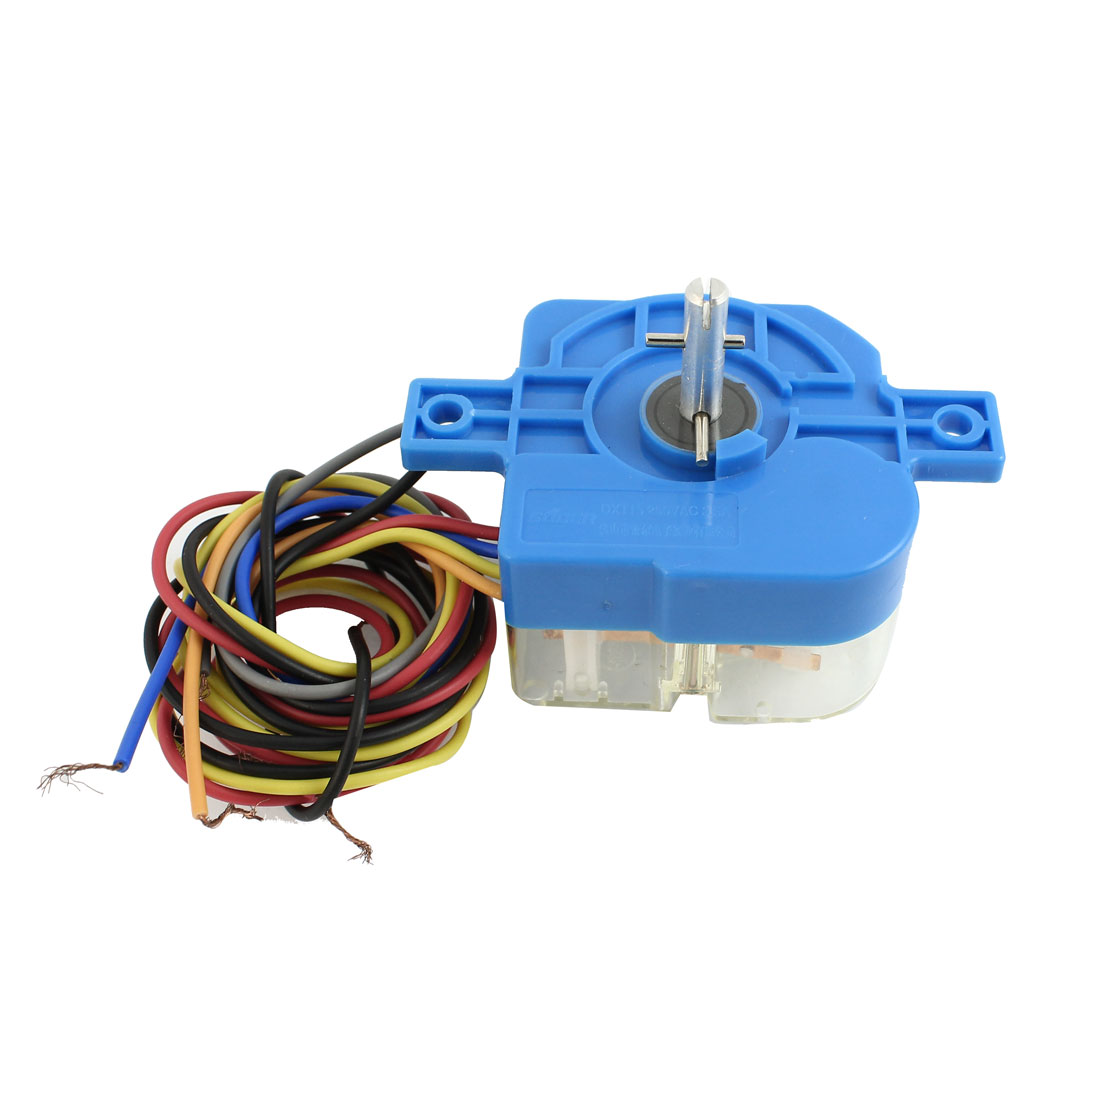 DXT15 AC 250V 3.5A 6 Wires 180 Degree Rotary Shaft Washing Machine Washer Timer Blue Clear